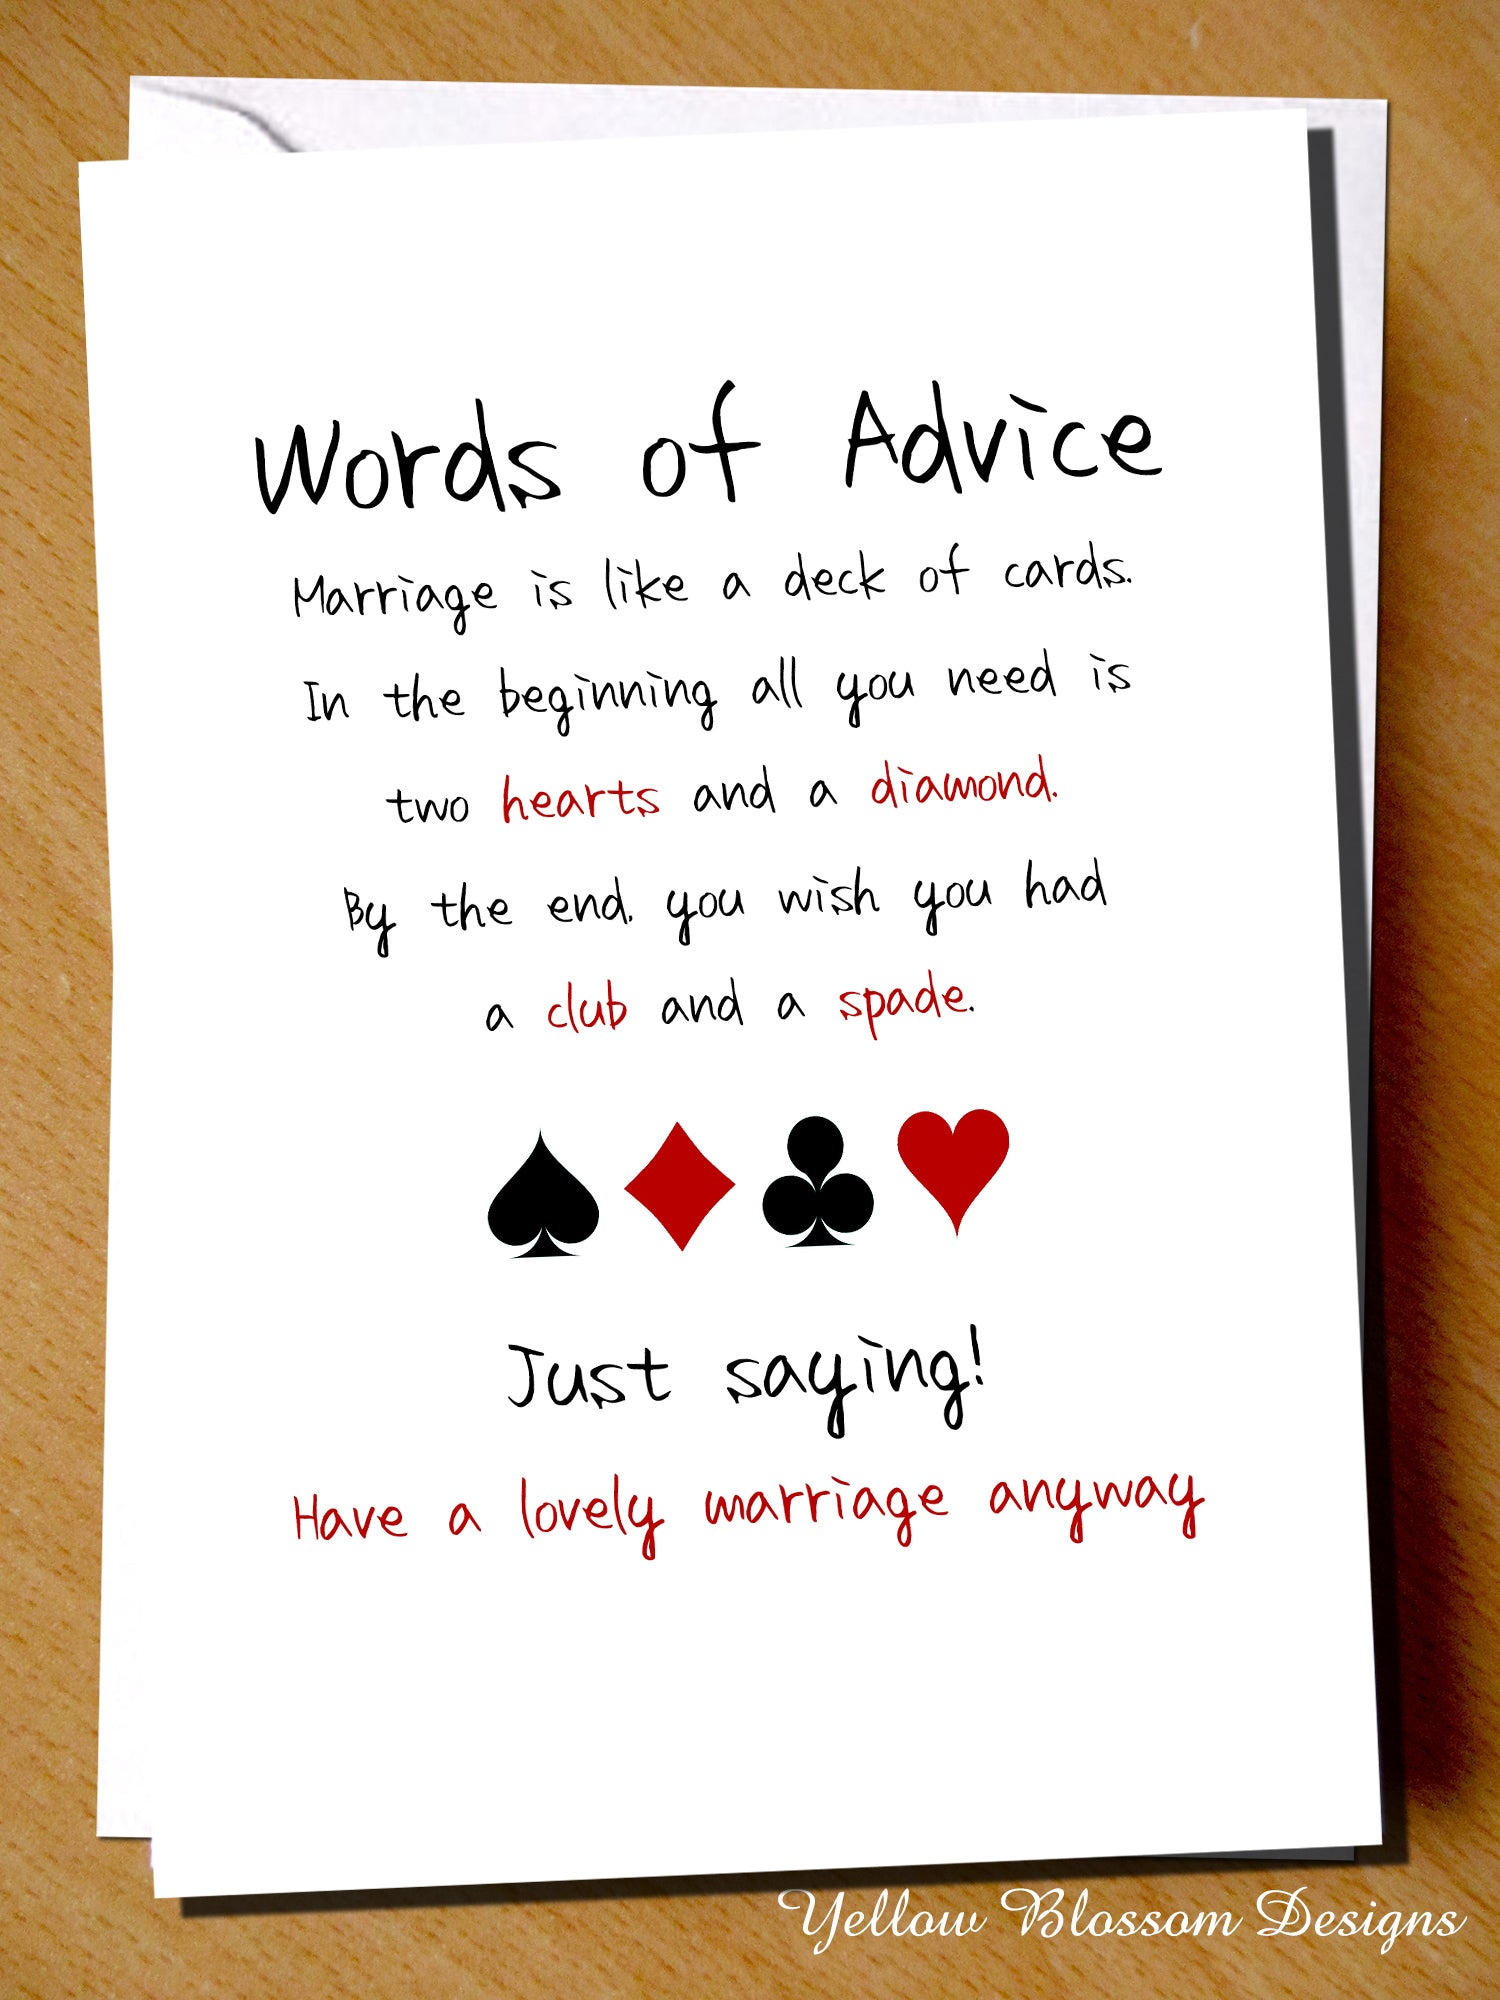 Words of advise marriage is like a deck of cards in the beginning words of advise marriage is like a deck of cards in the beginning all m4hsunfo